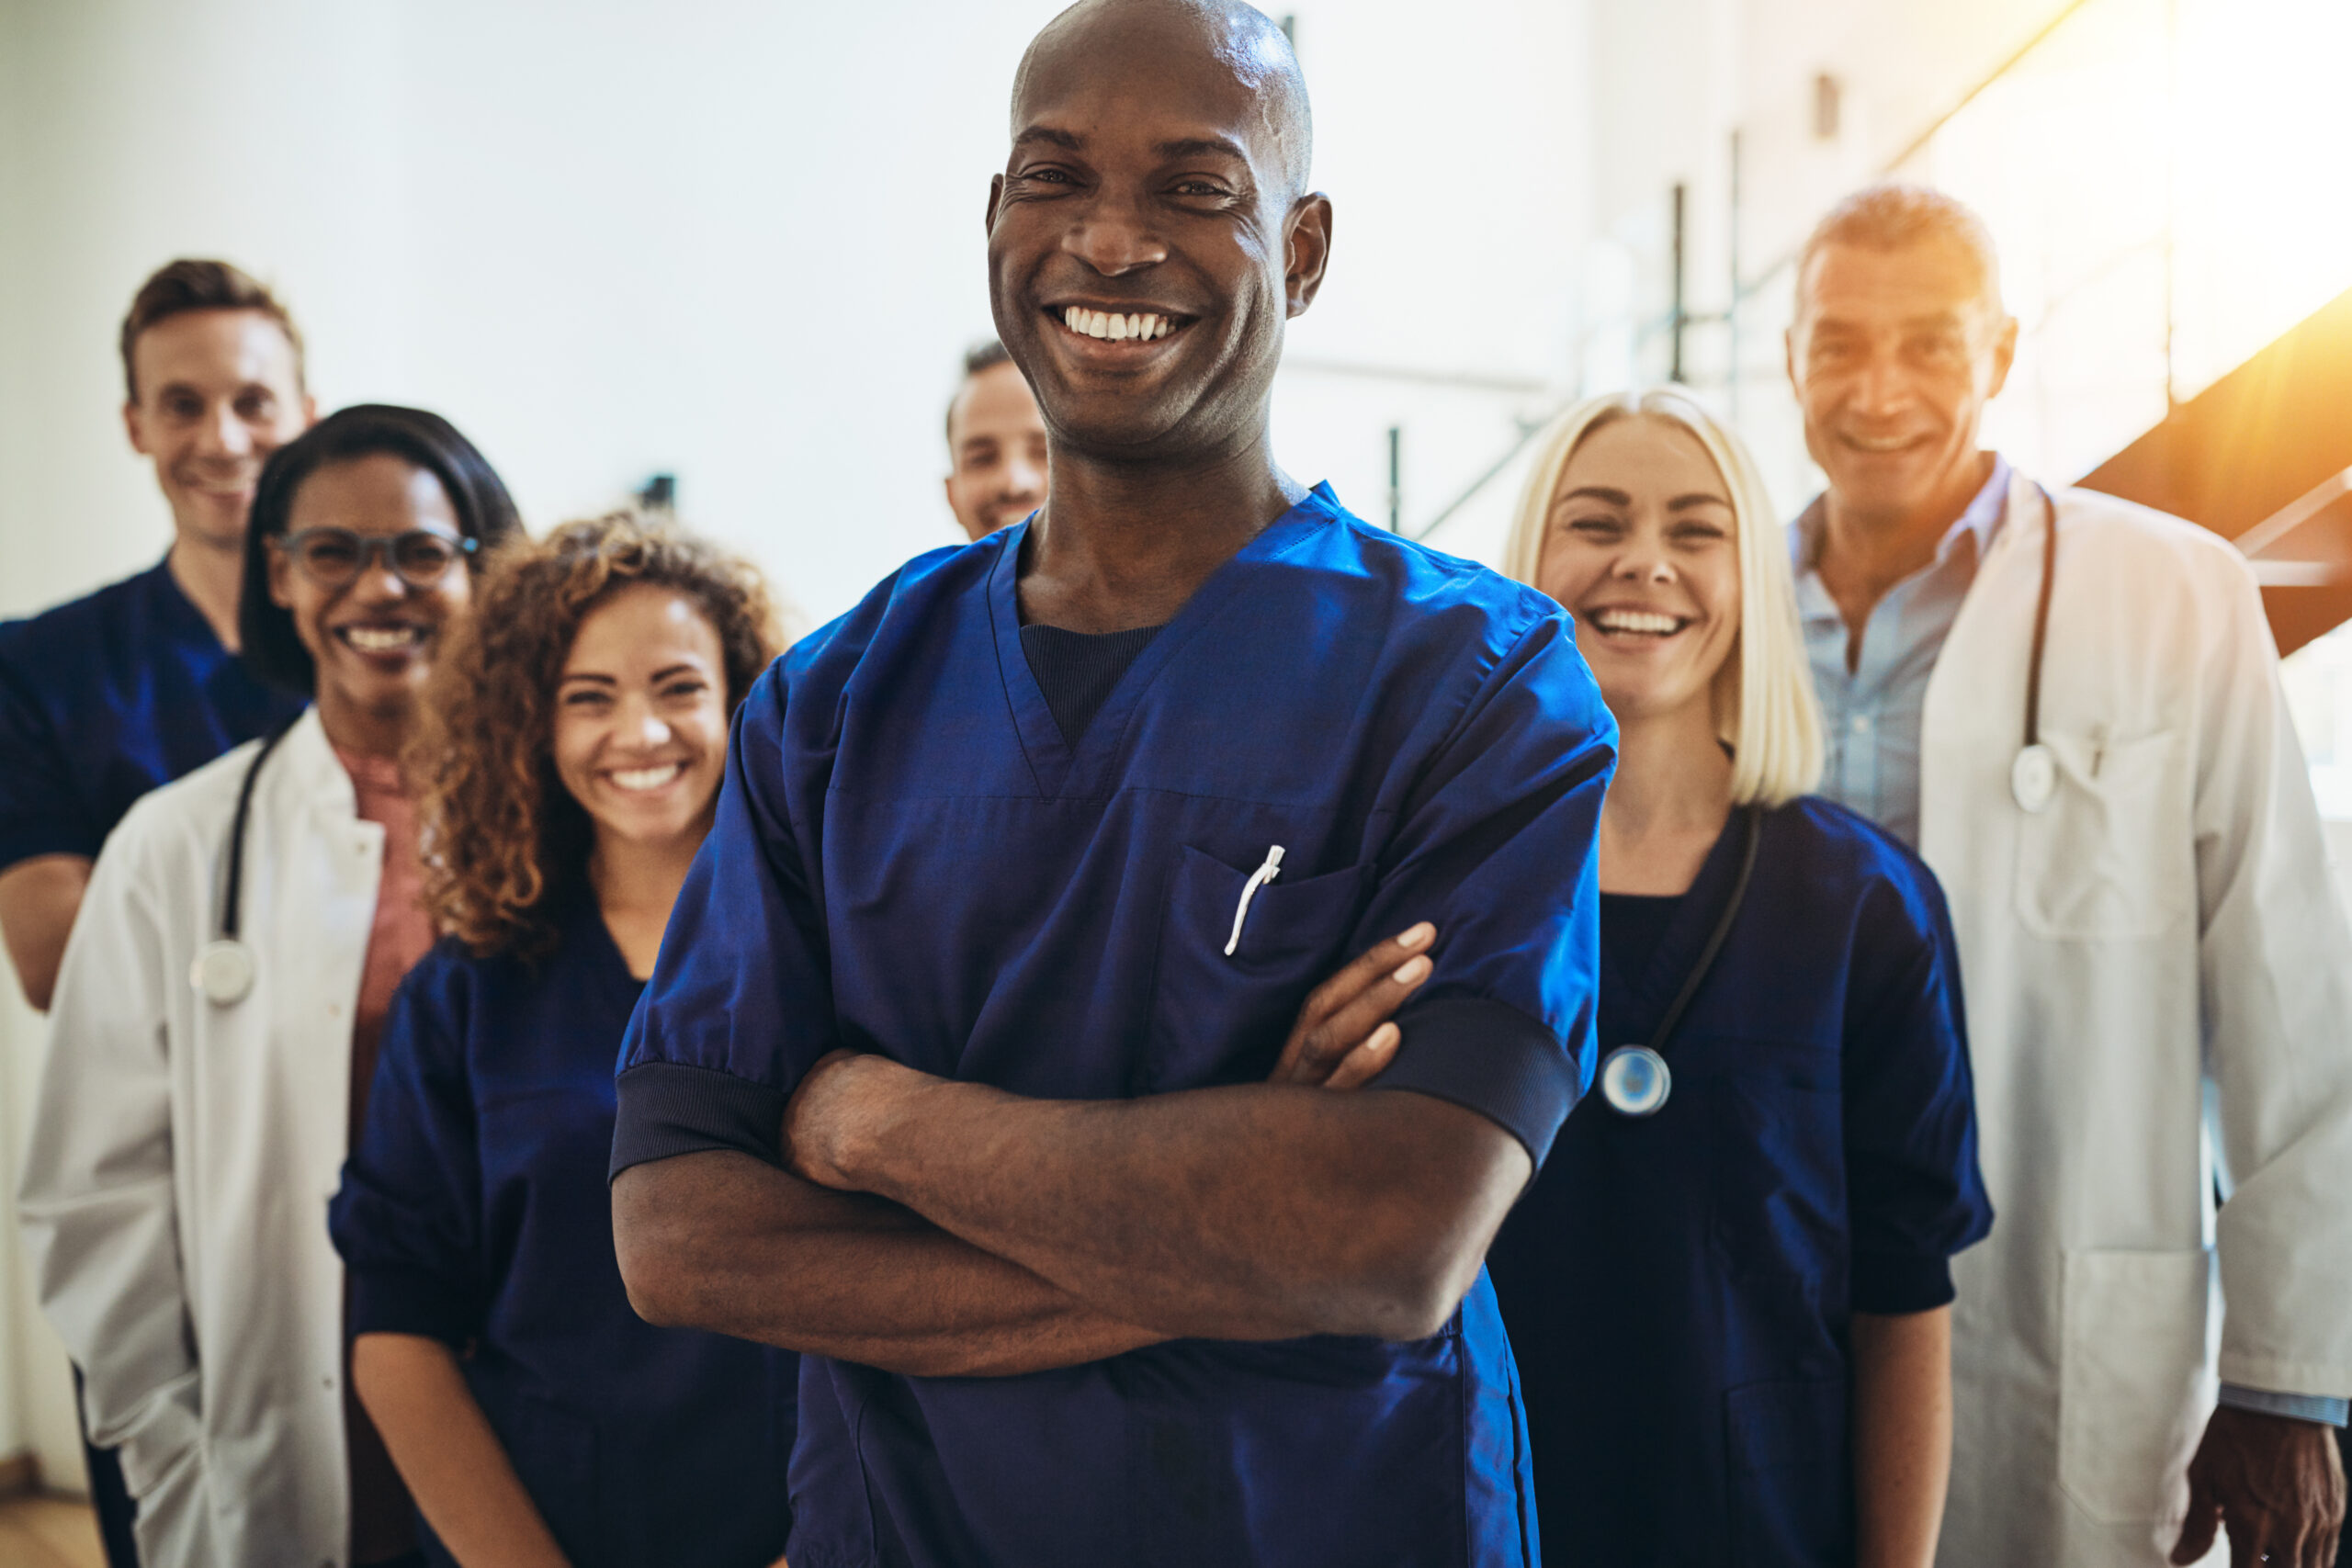 oung African male doctor smiling while standing in a hospital corridor with a diverse group of staff in the background